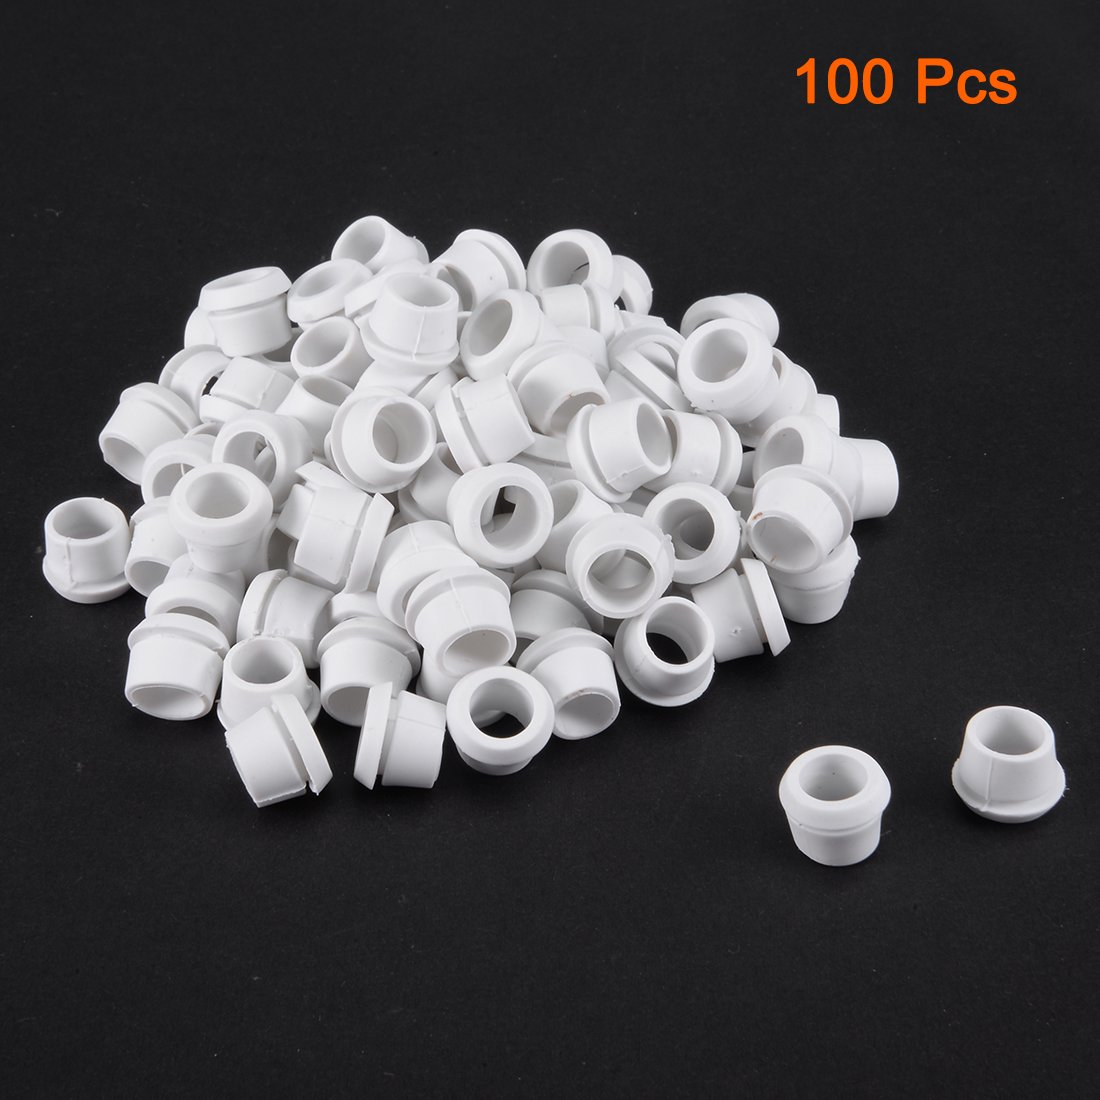 uxcell 0421 Wire Protector Oil Resistant Armature Rubber Grommets 9mm Mounting Dia Black 500 Pcs